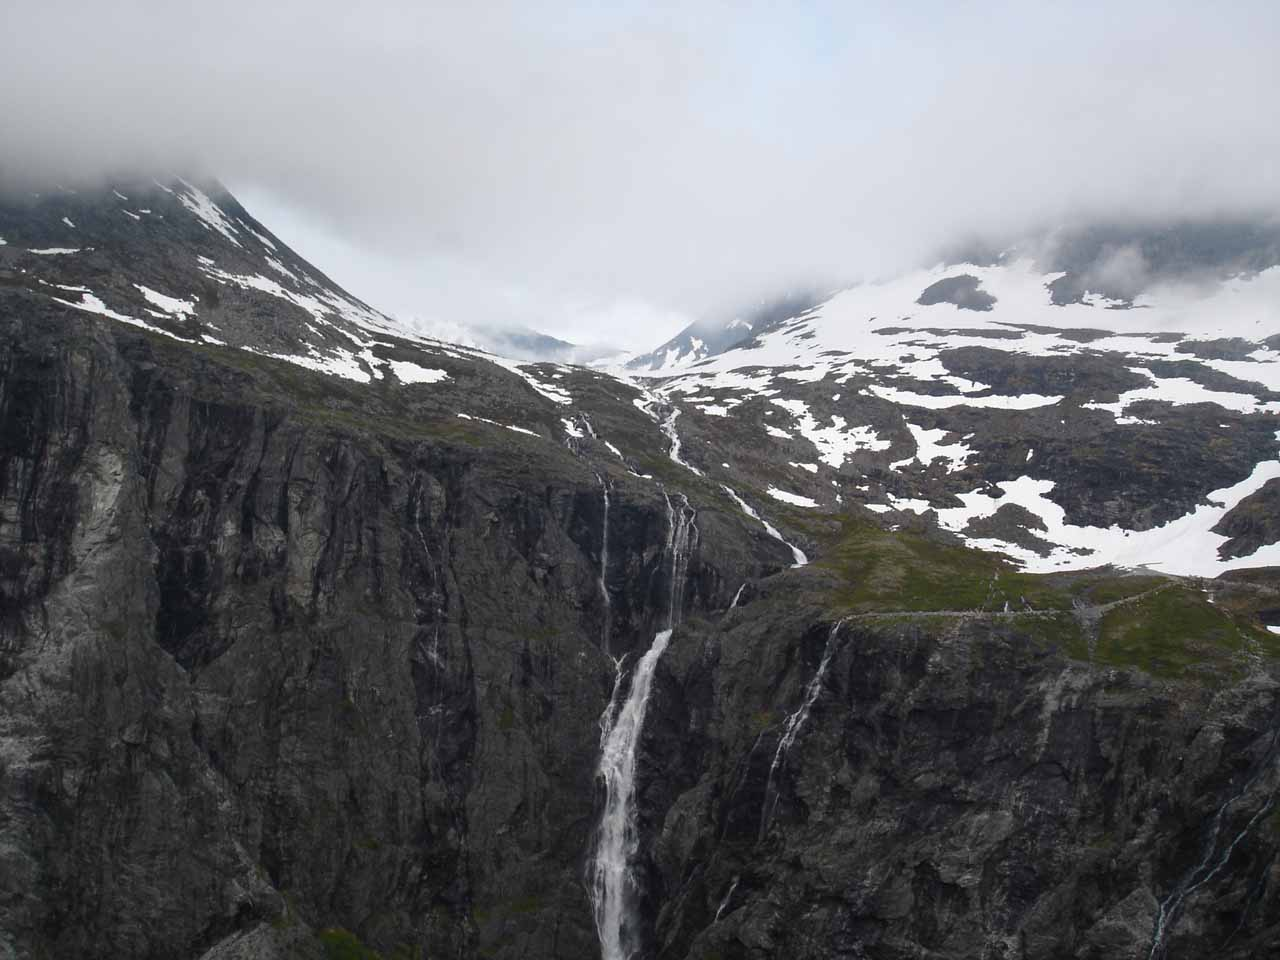 Now we were descending Trollstigen, but it seemed like there were some clouds starting to hang lower later that evening